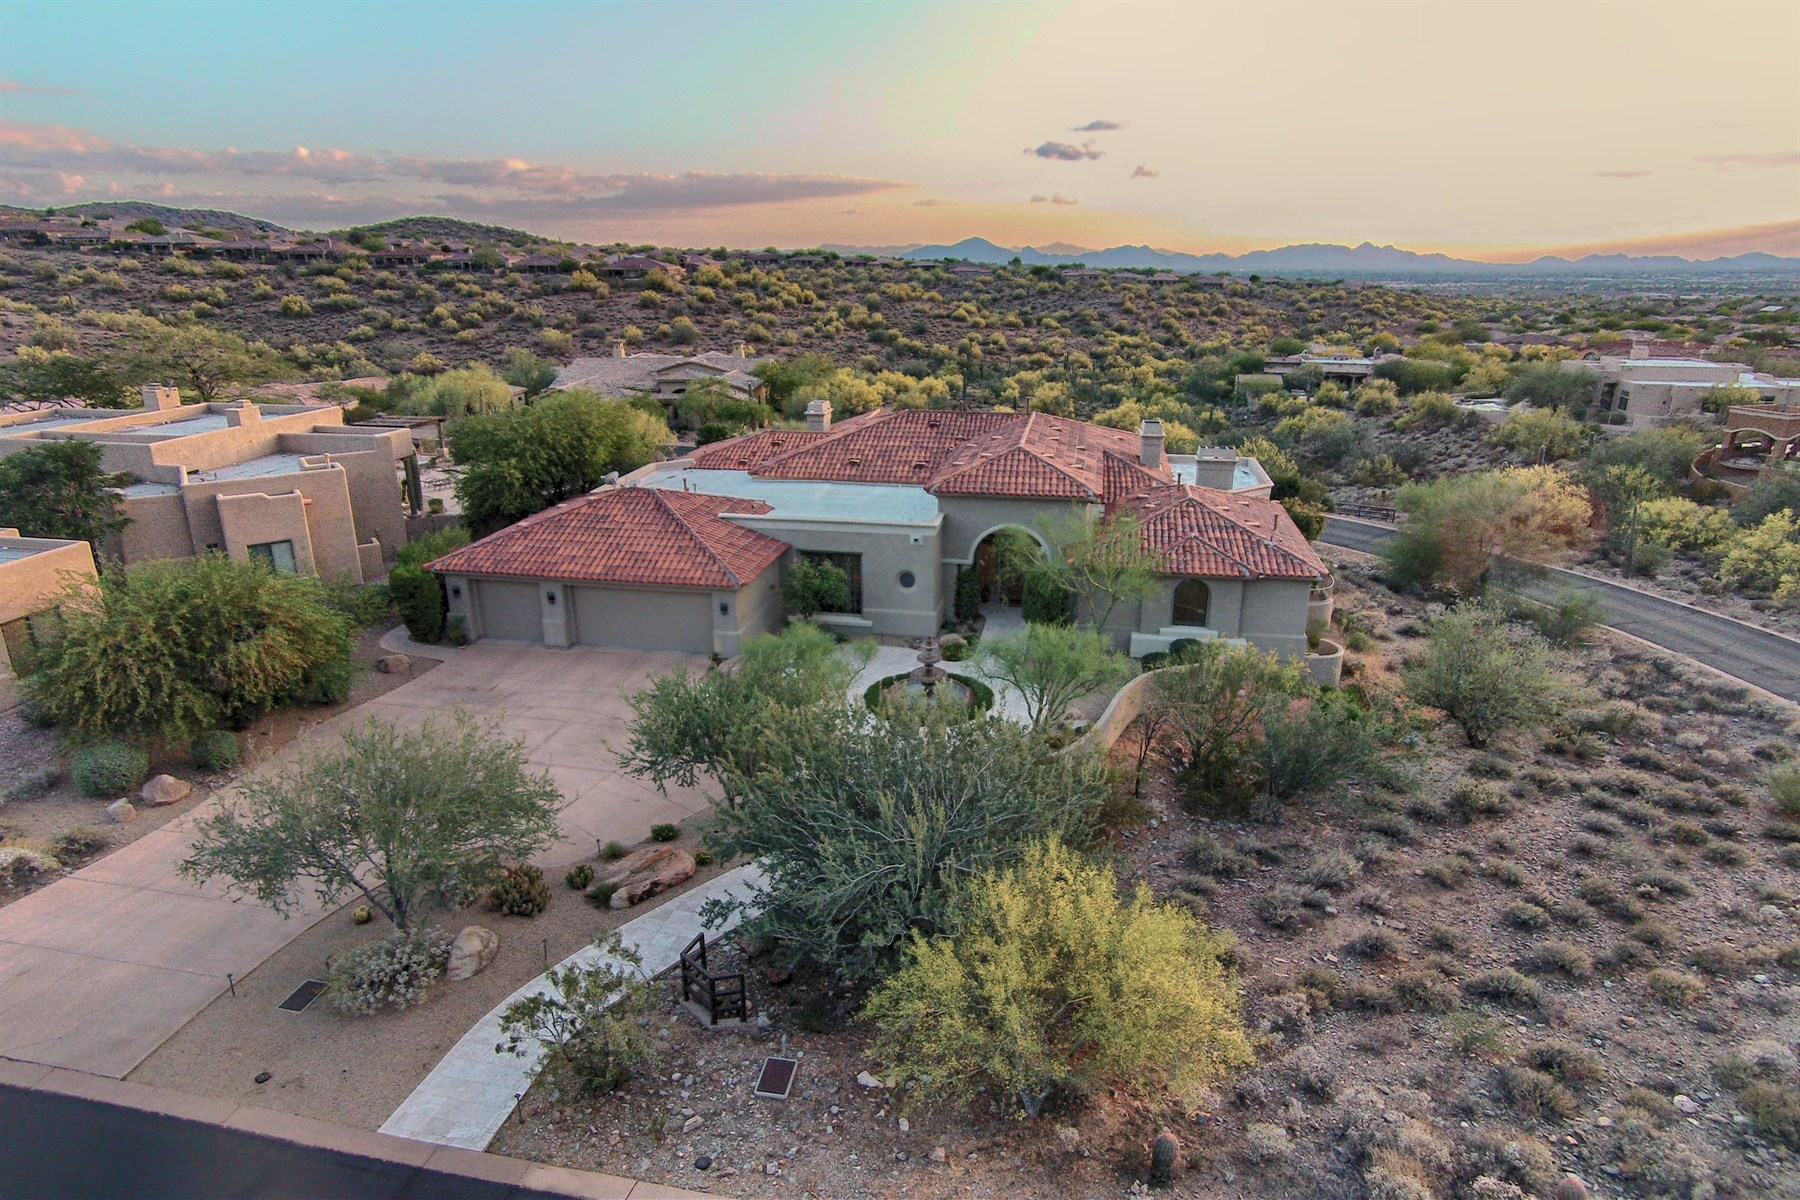 Single Family Home for Sale at Exquisite Mediterranean style home nestled in a secluded canyon. 11397 E BETONY DR Scottsdale, Arizona, 85255 United States